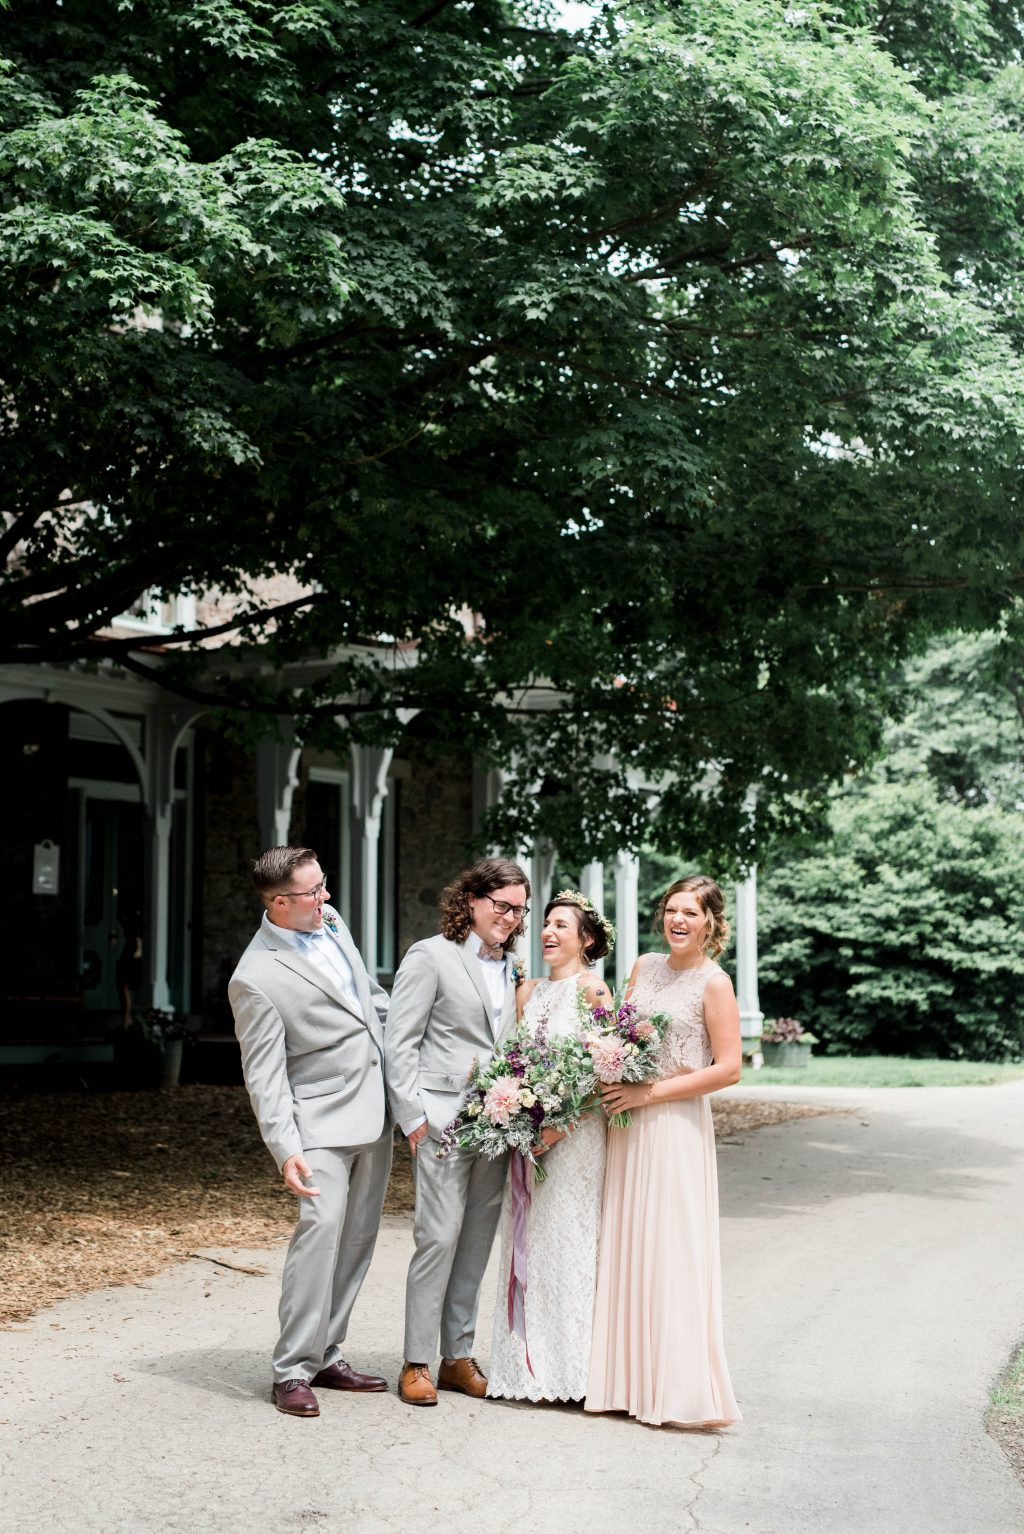 awbury-arboretum-wedding-DIY-boho-summer-haley-richter-photography-117